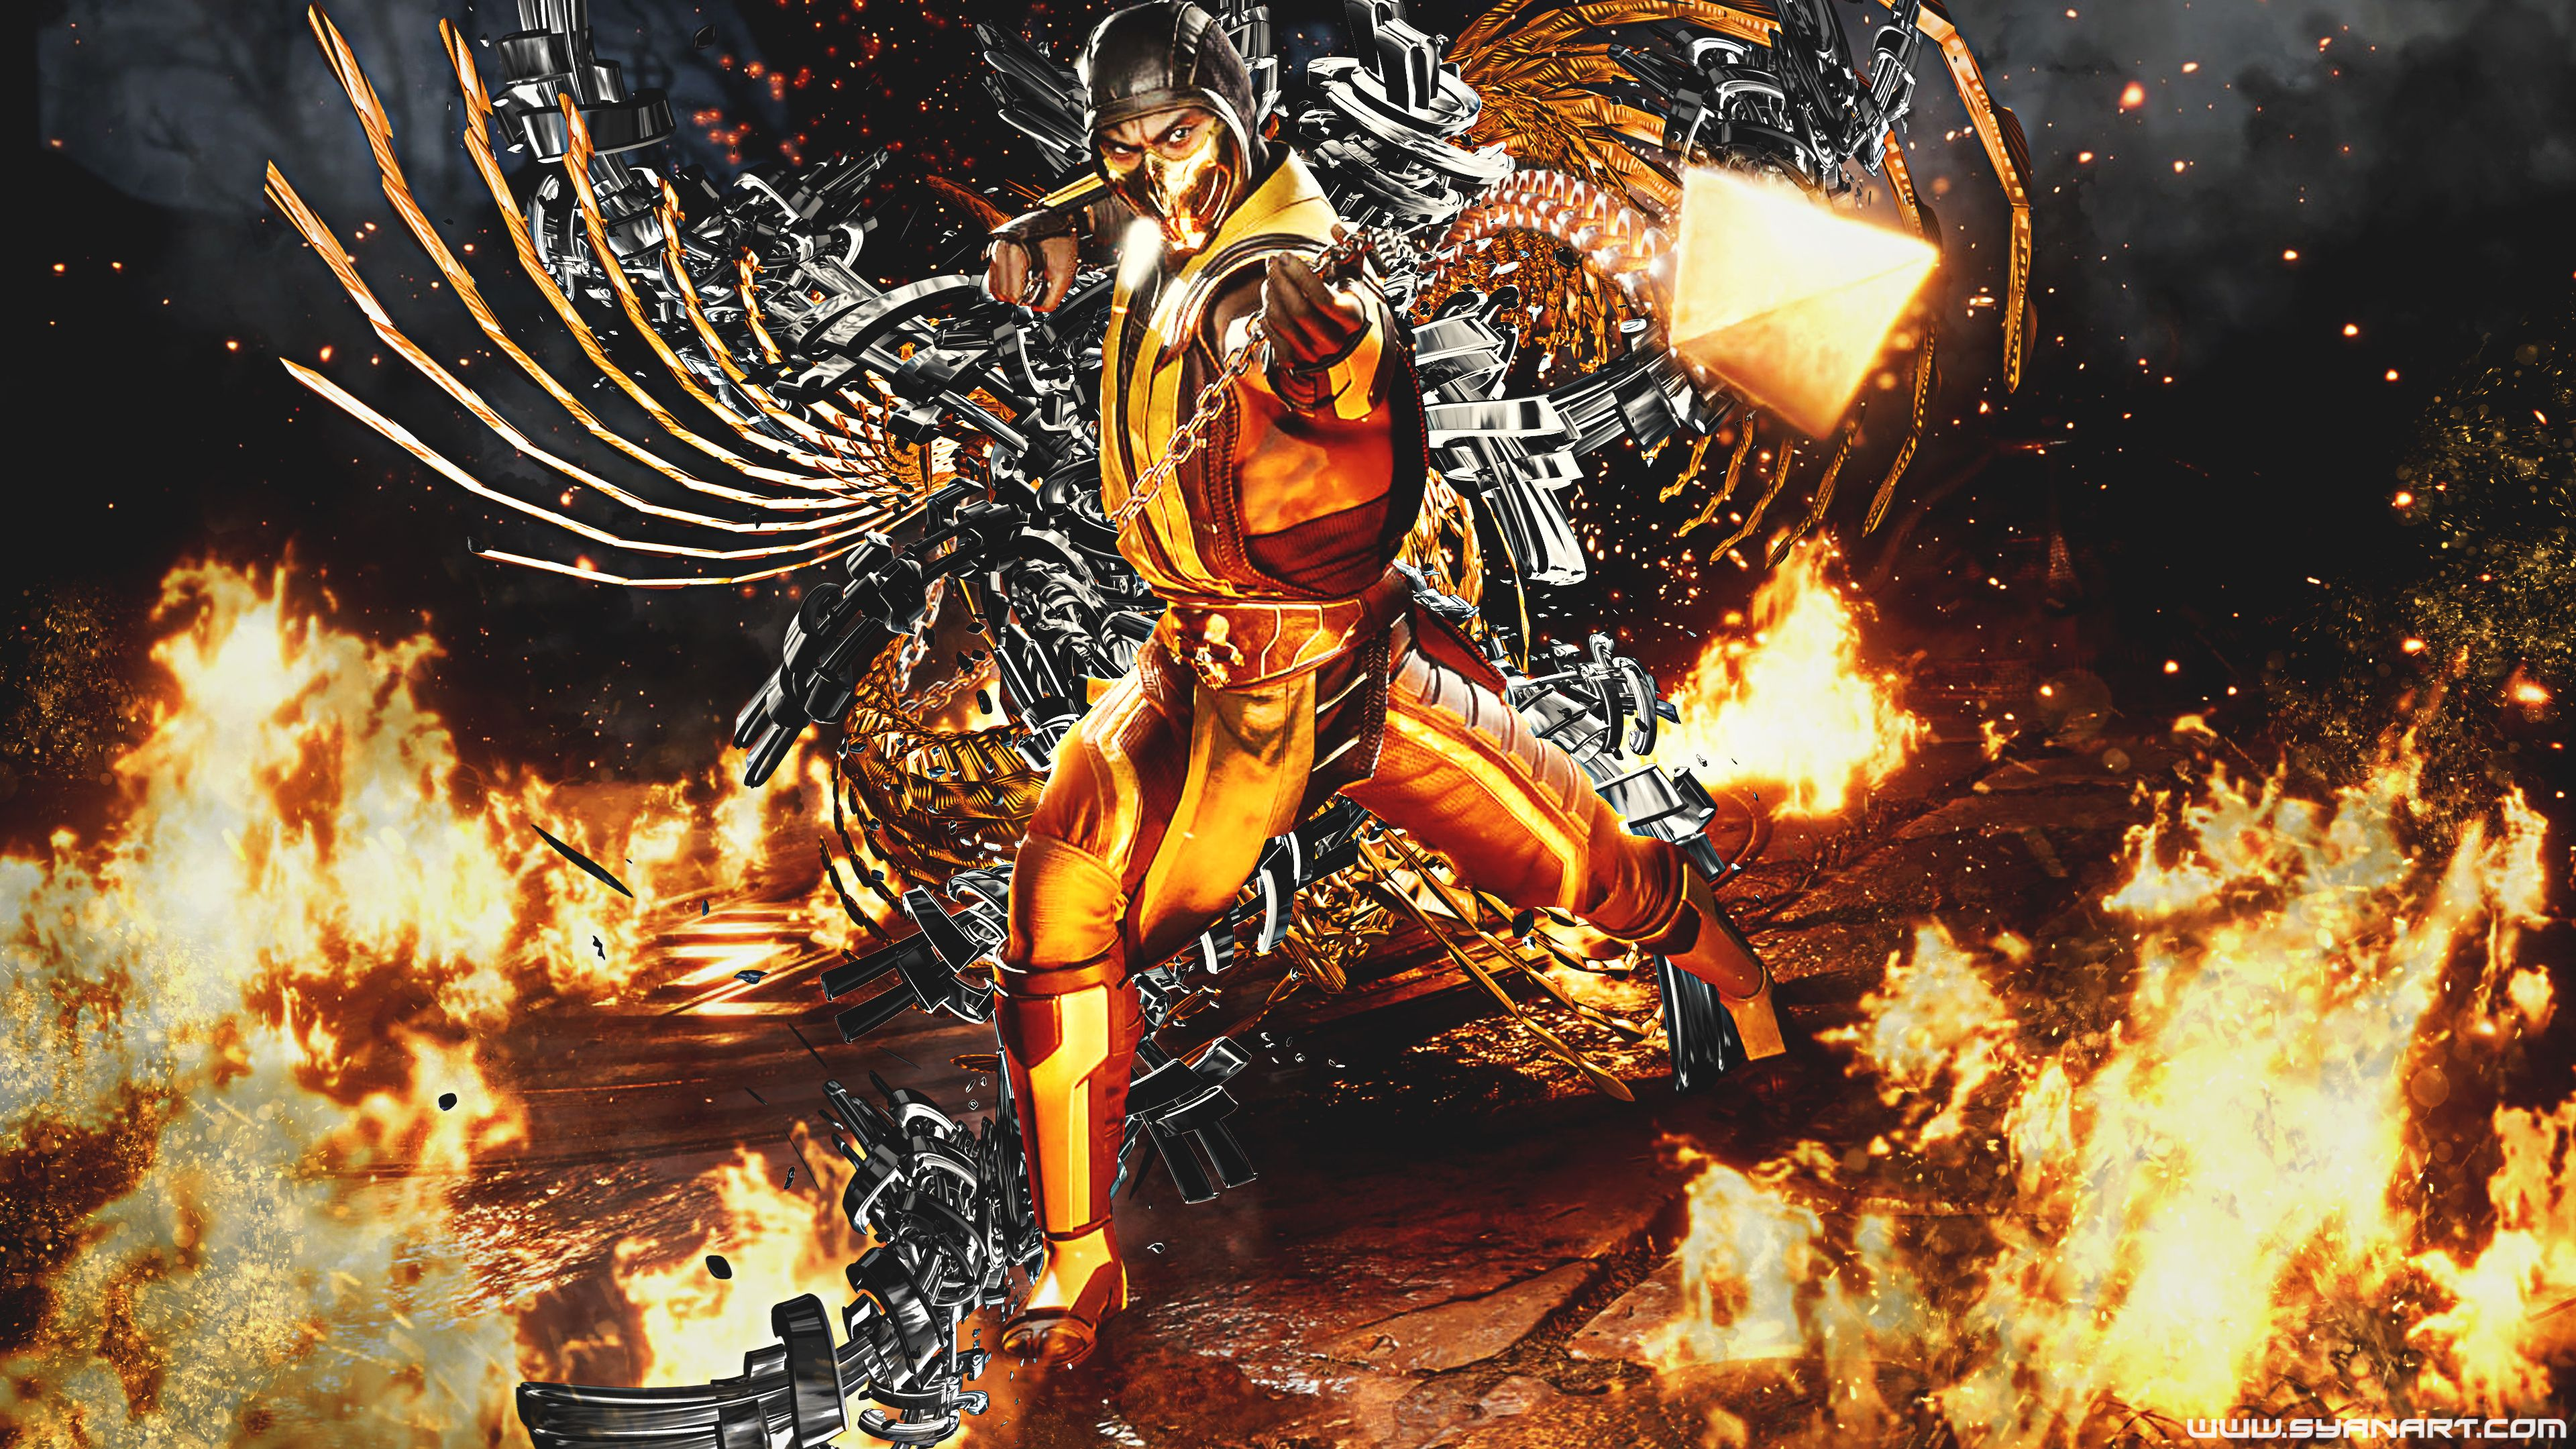 Mortal Kombat 11 Classic Scorpion 4k Wallpaper In 2020 Mortal Kombat Best Gaming Wallpapers Gaming Wallpapers